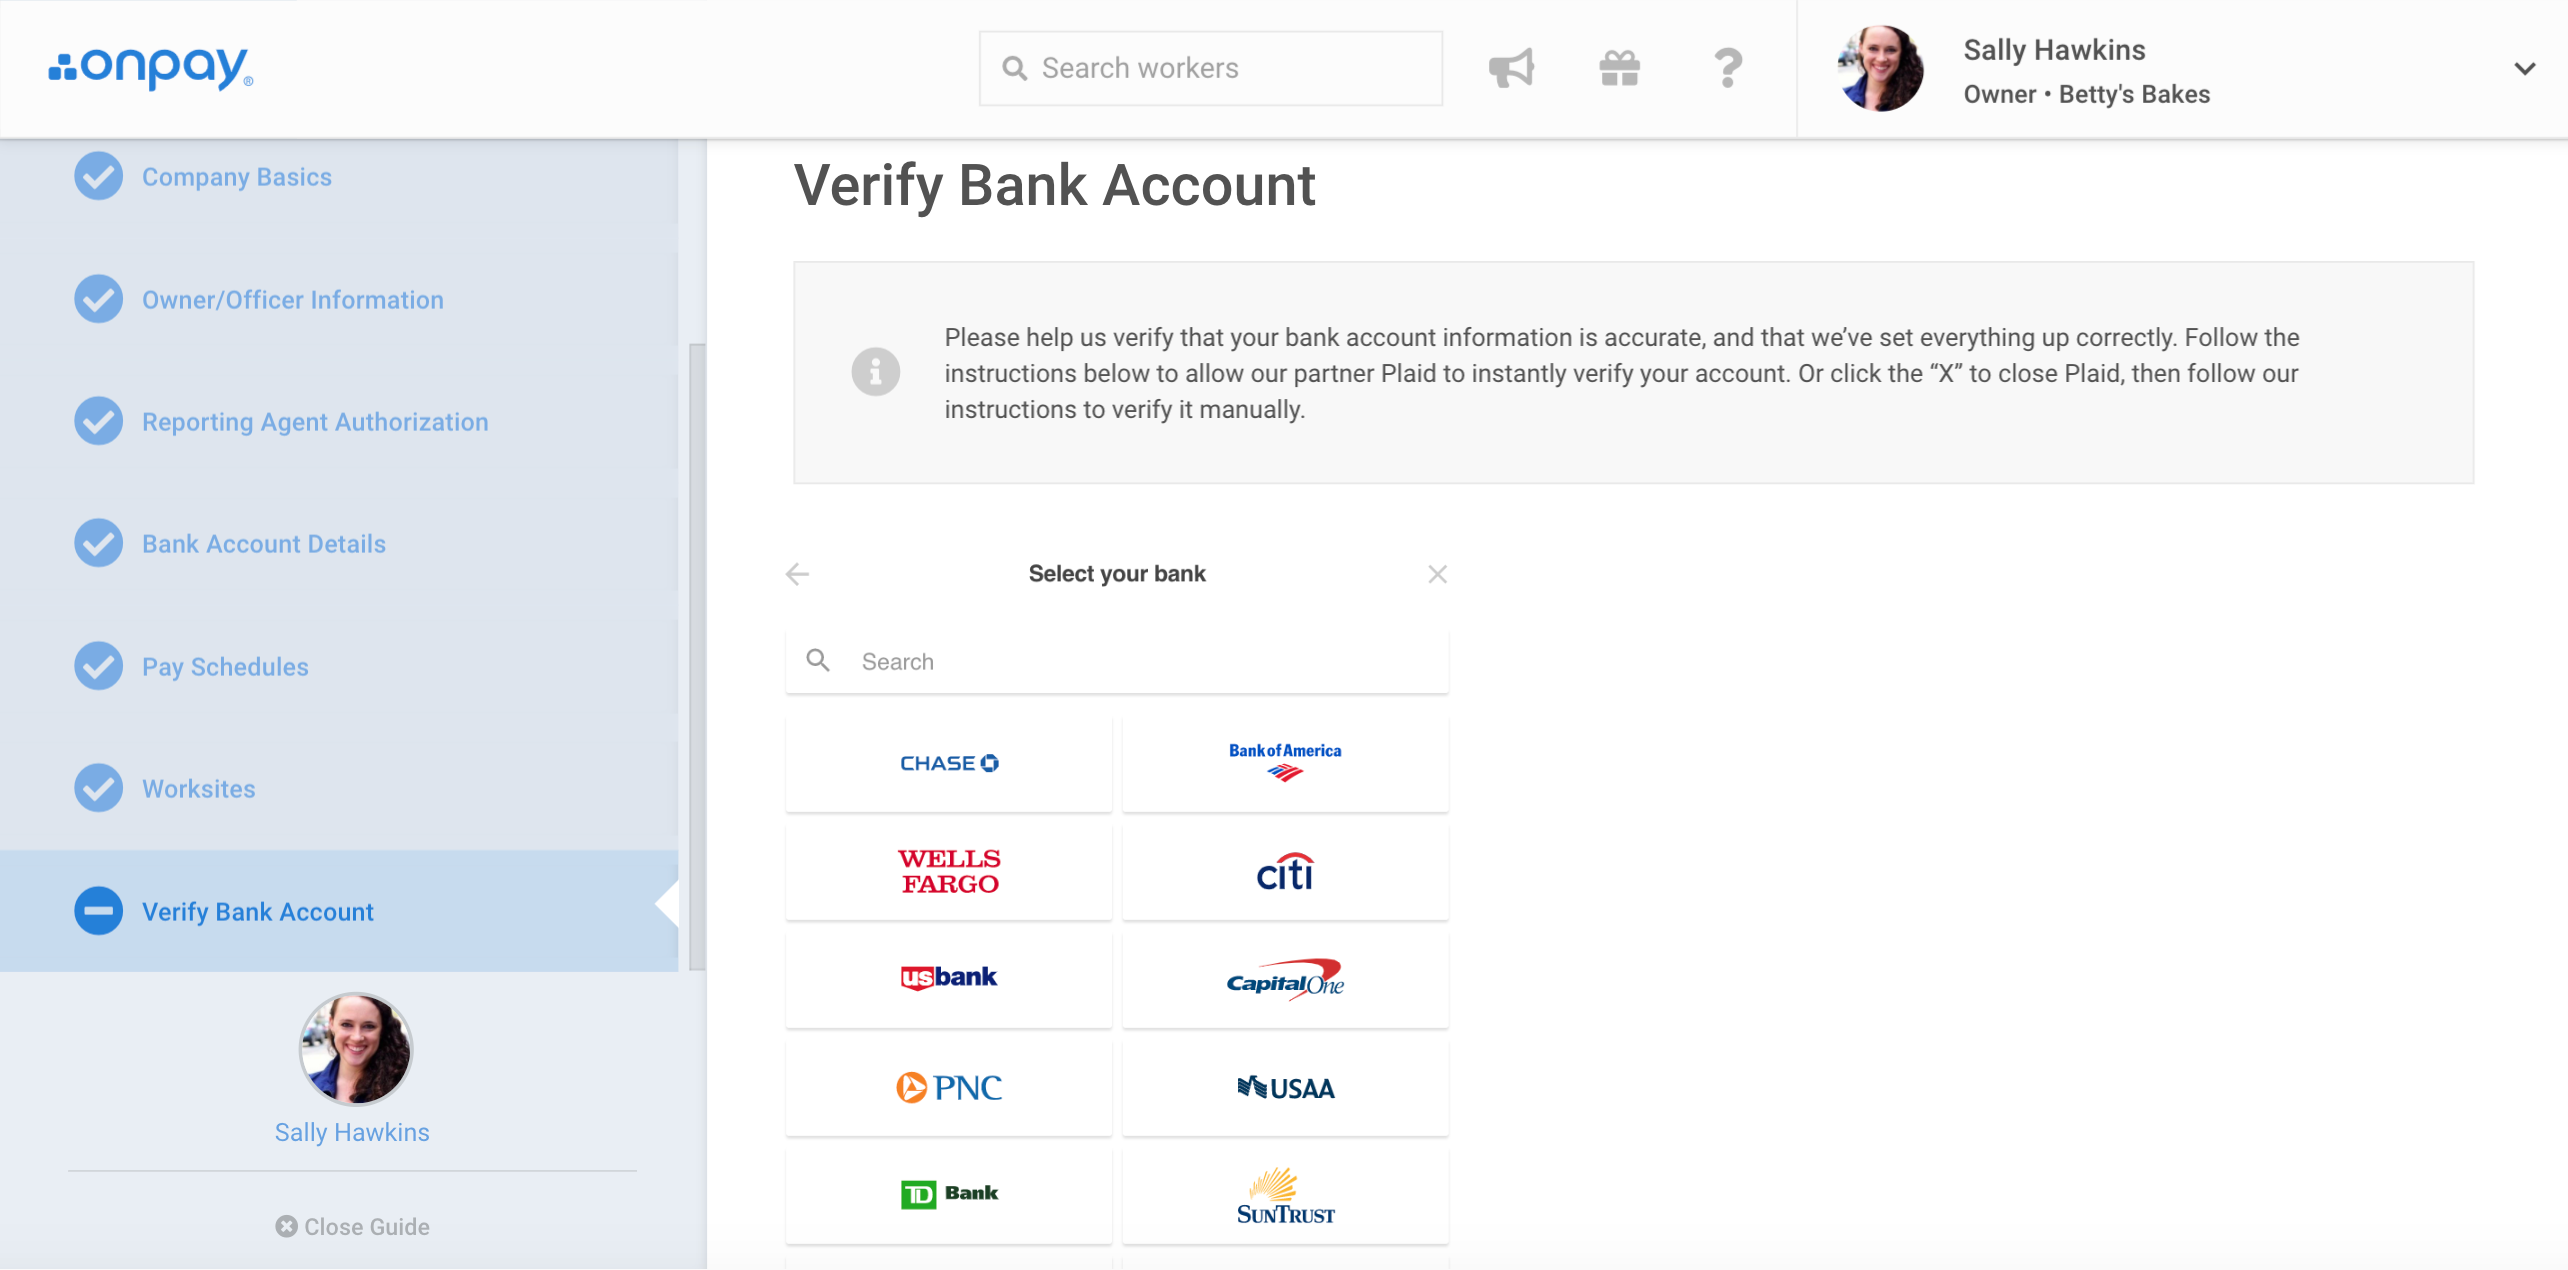 verify_bank_account_2.png